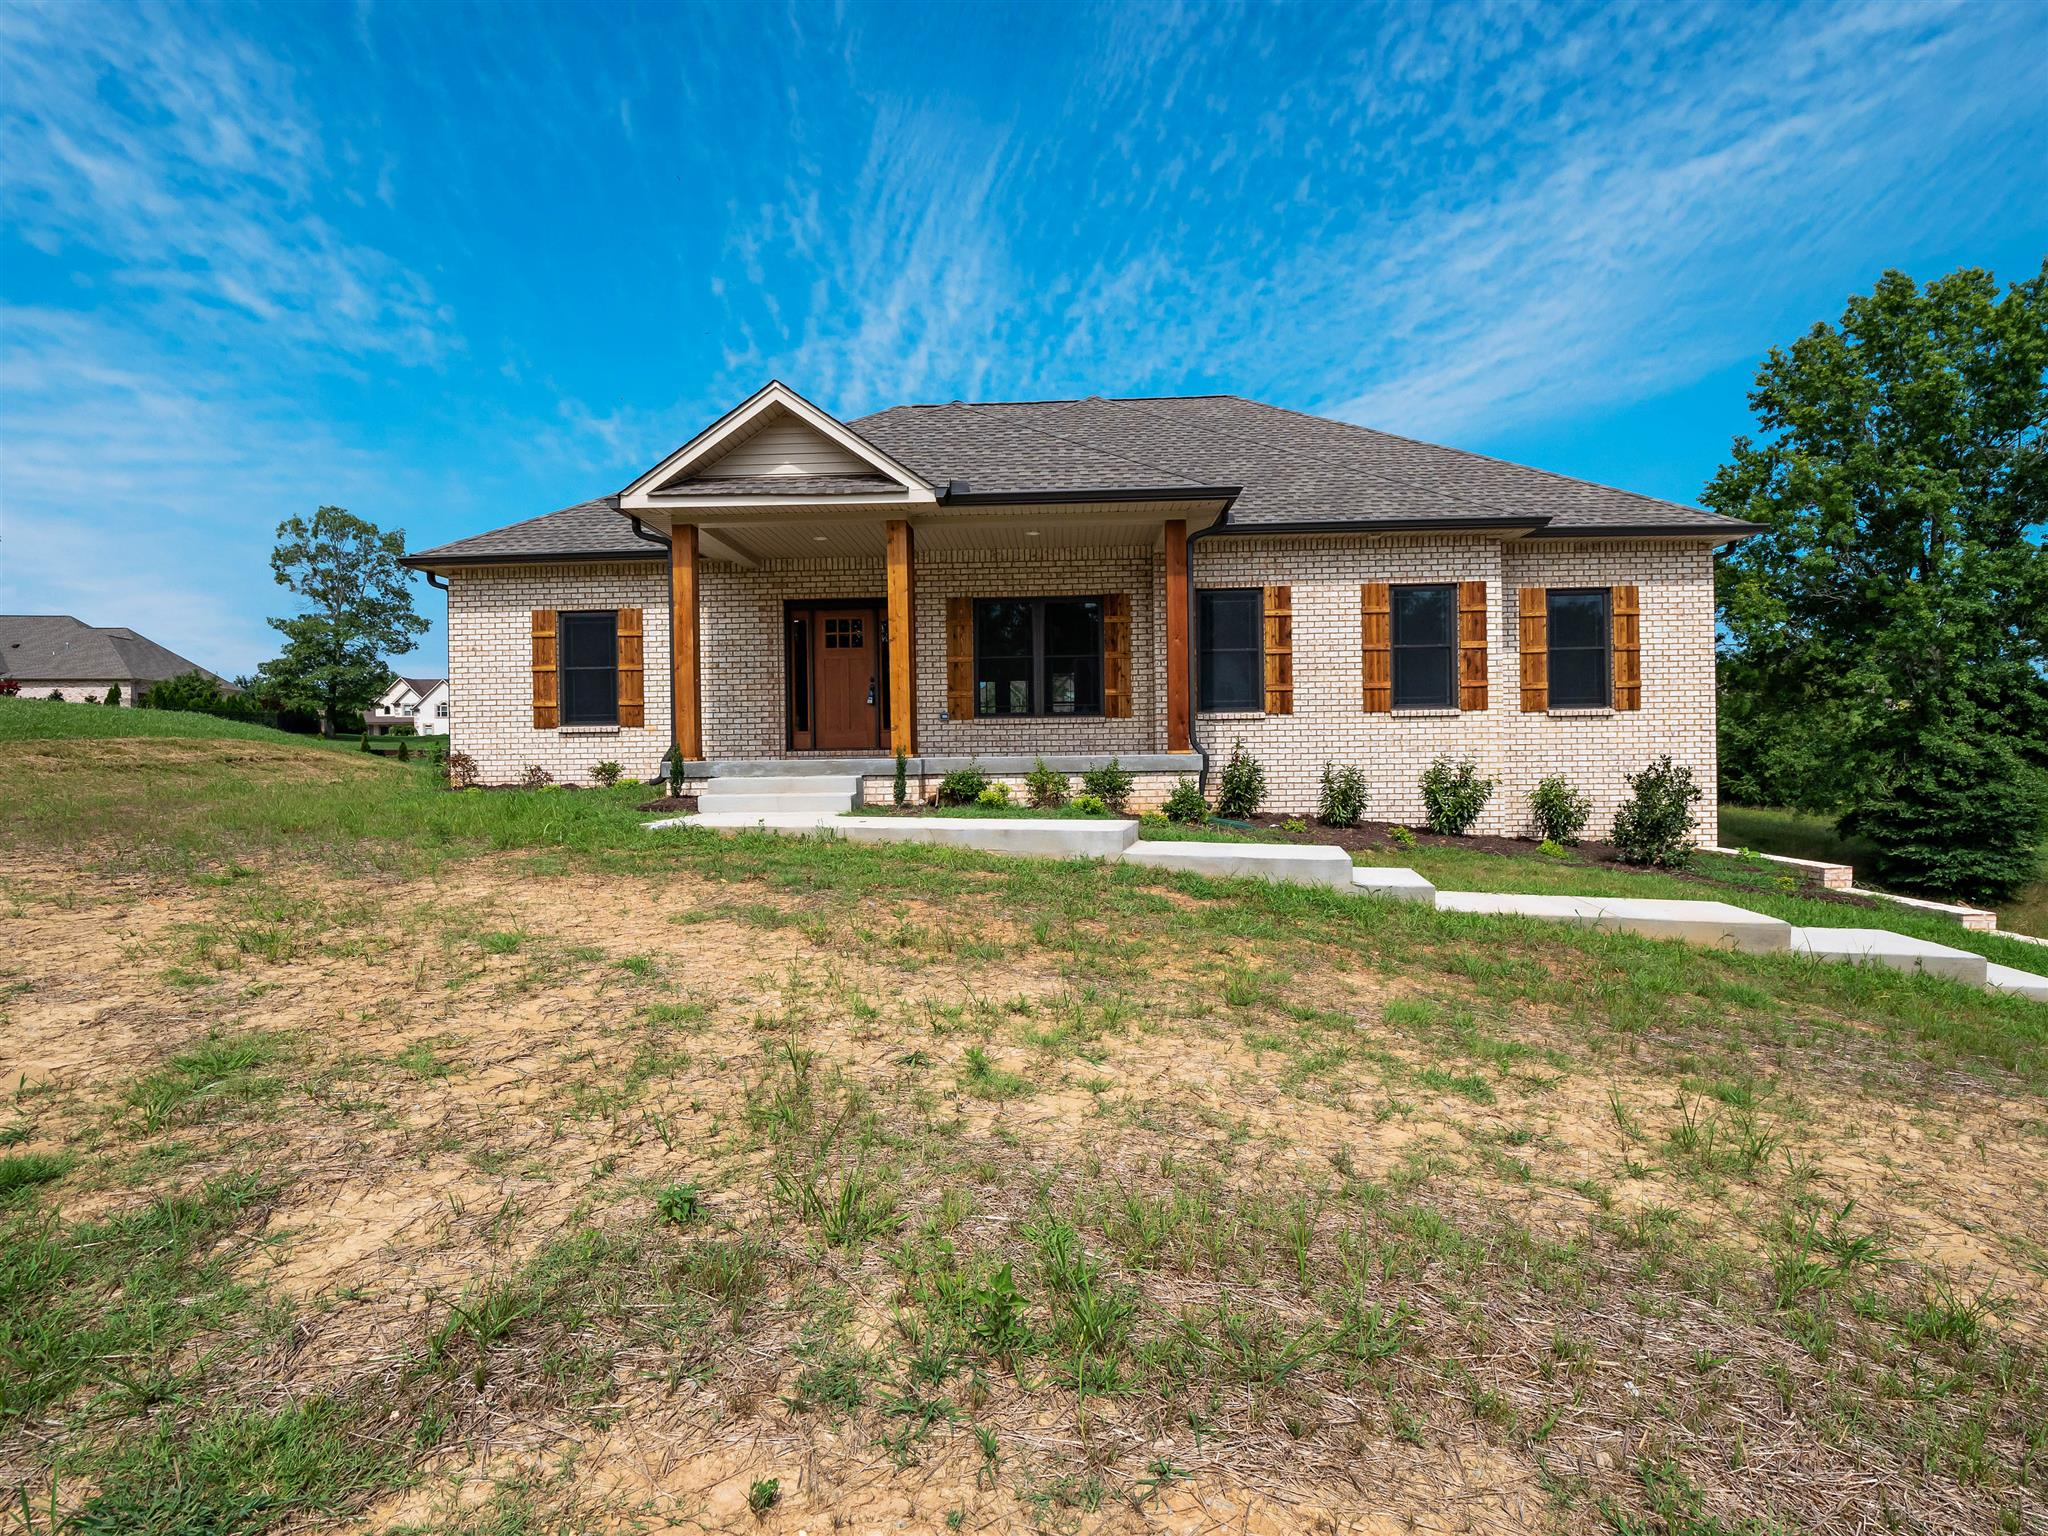 871 Dixie Lane, Pleasant View, TN 37146 - Pleasant View, TN real estate listing